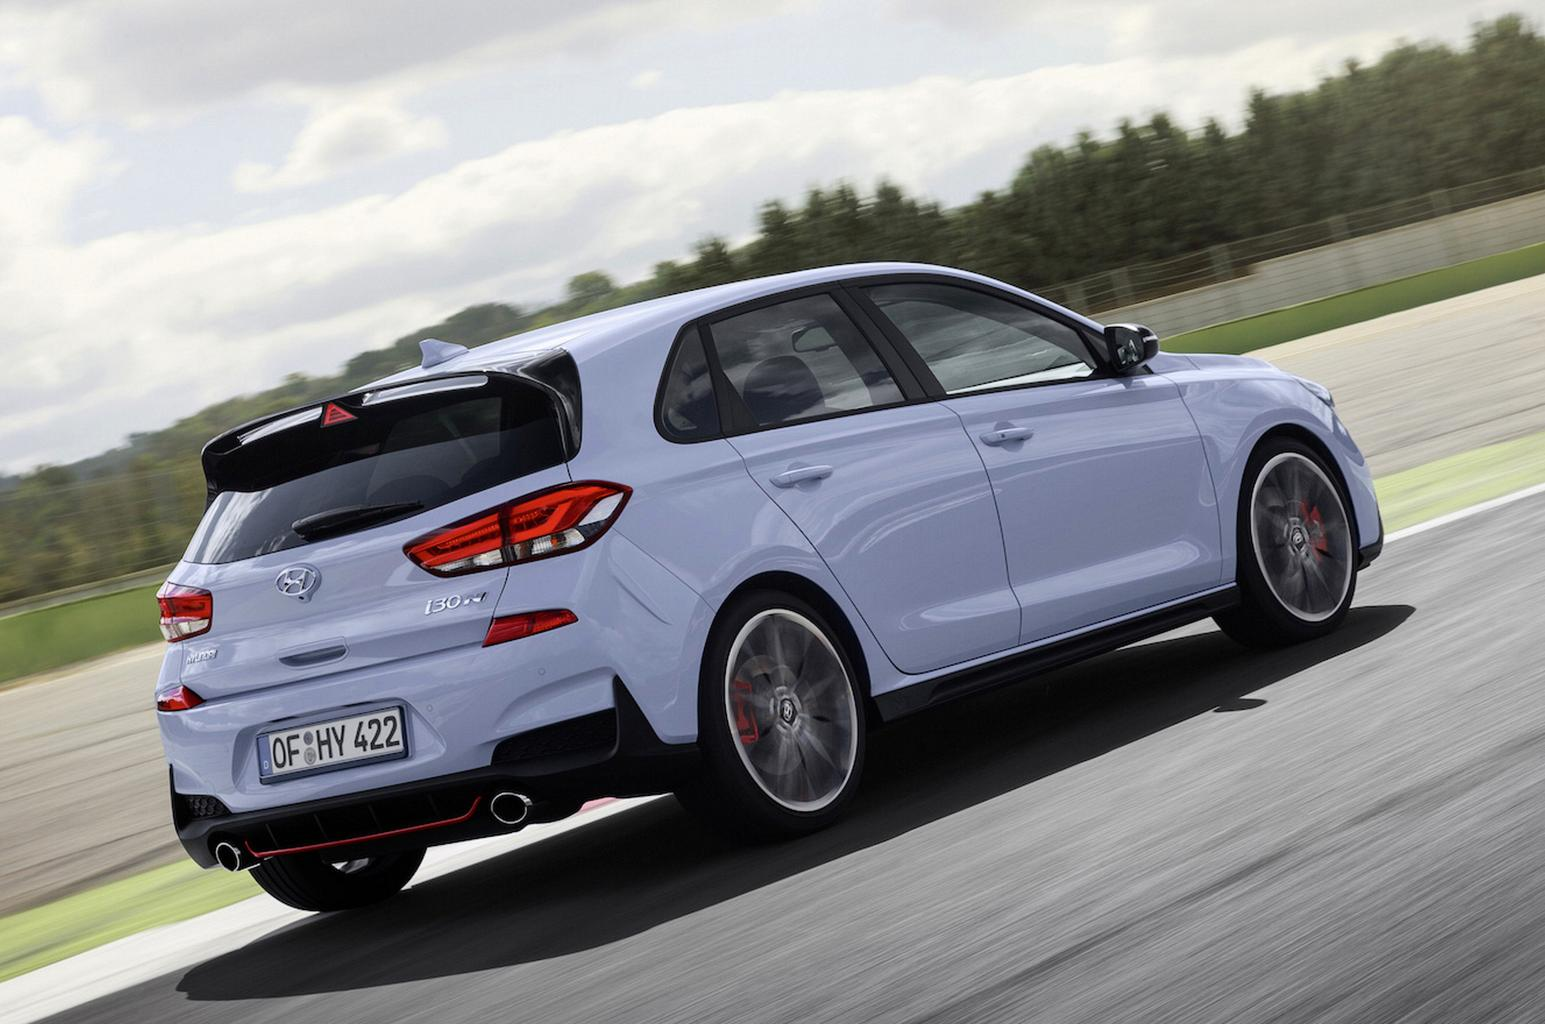 2017 Hyundai i30N review – price, specs and release date